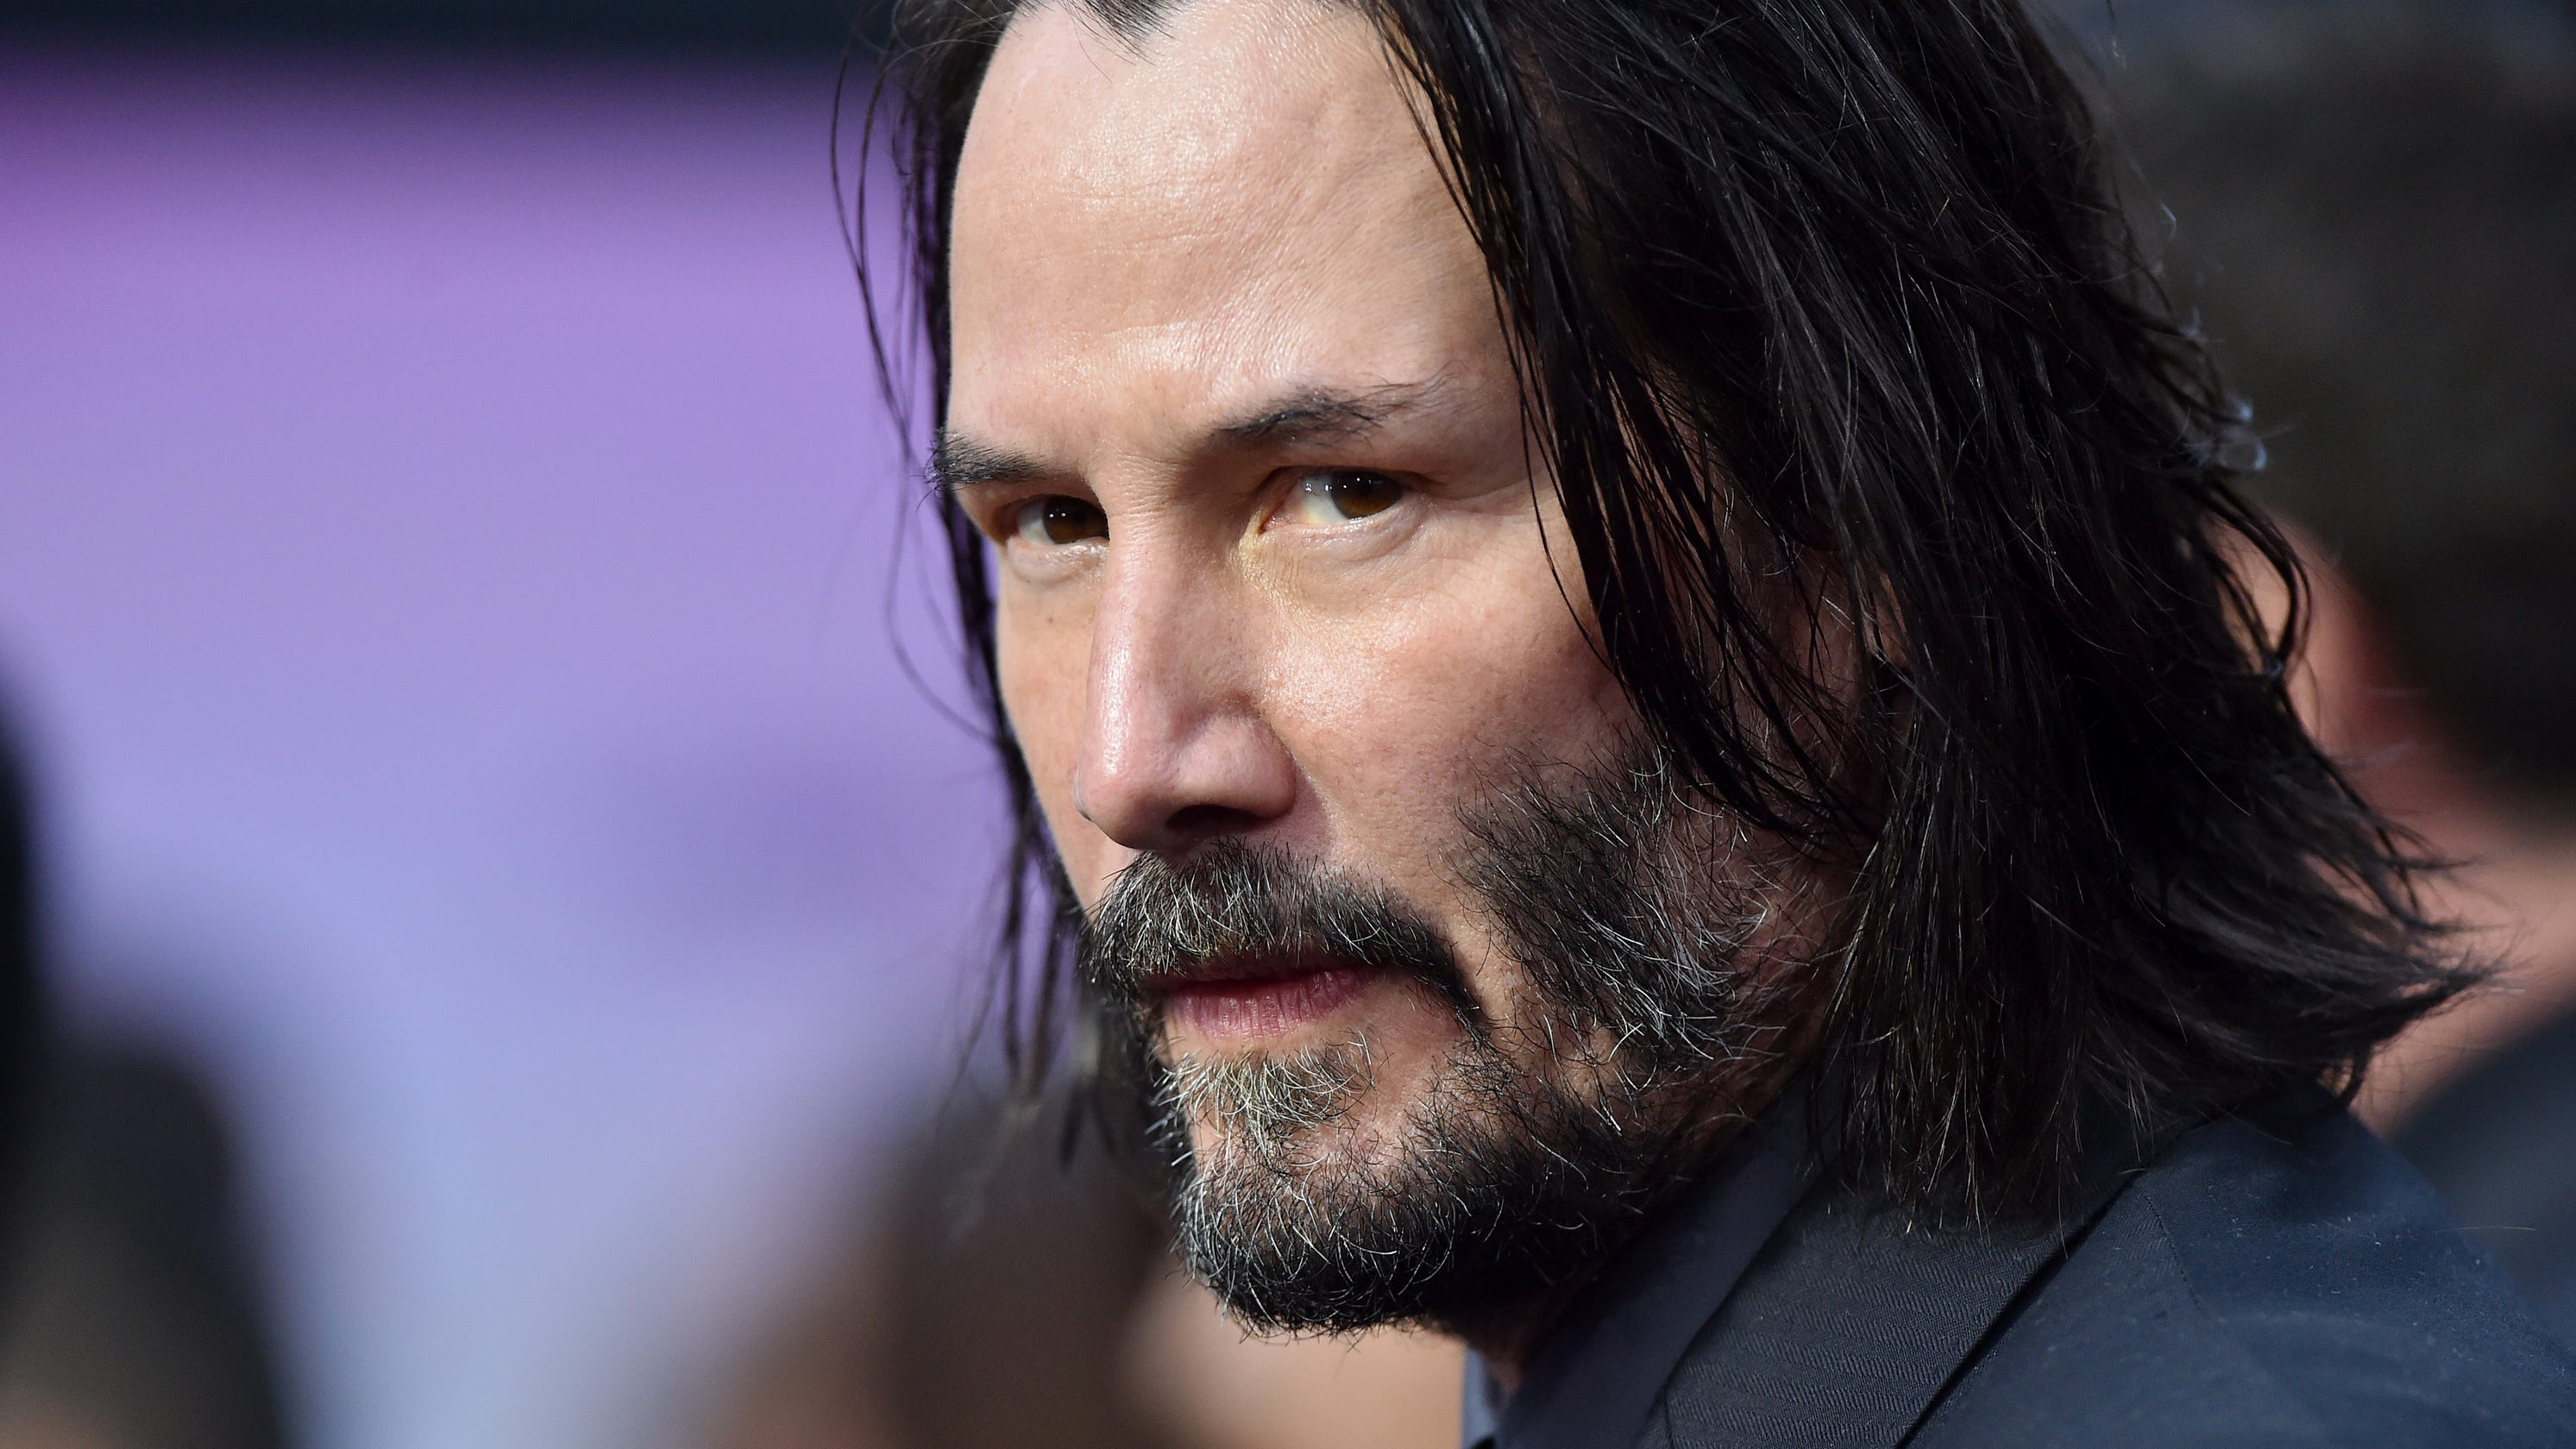 Keanu Reeves pulls a Keanu move, greets fans: 'You're breathtaking'